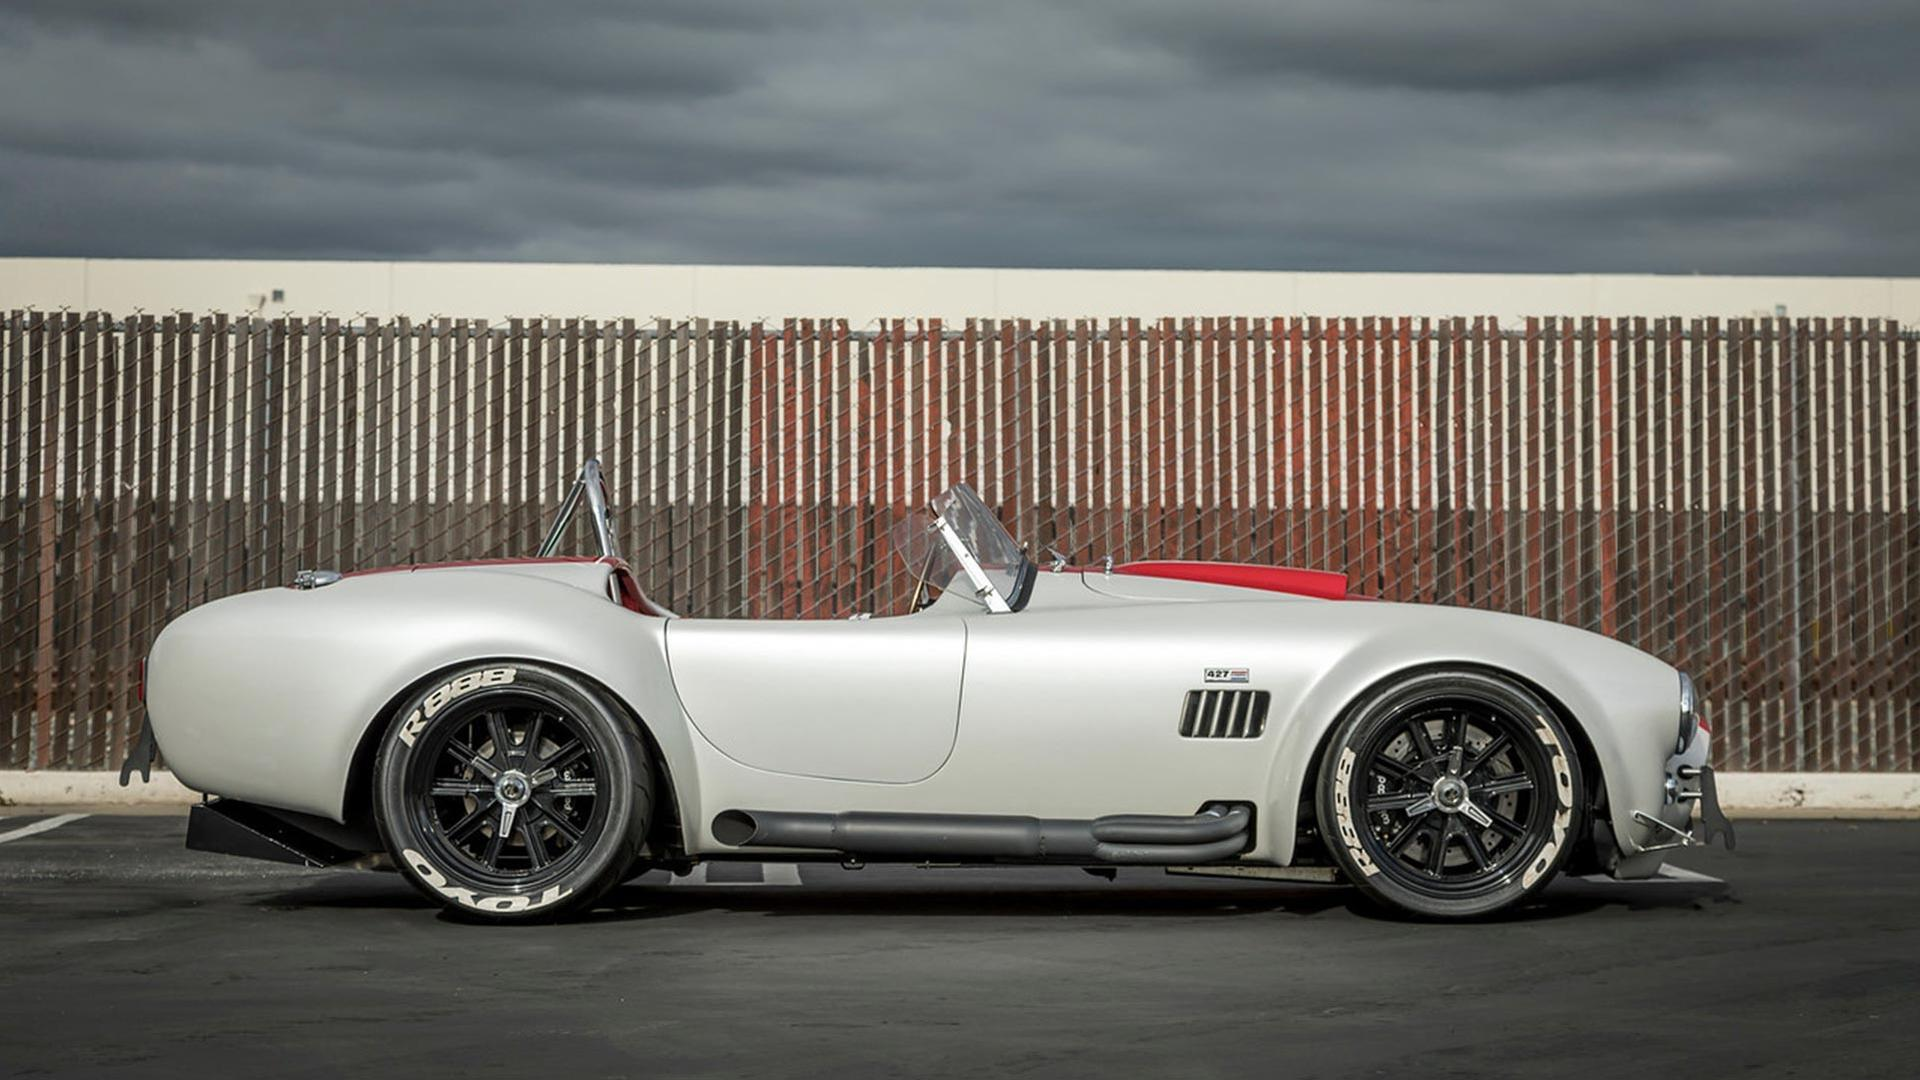 Superformance-Cobra-breaks-top-speed-record-at-201-mph-3